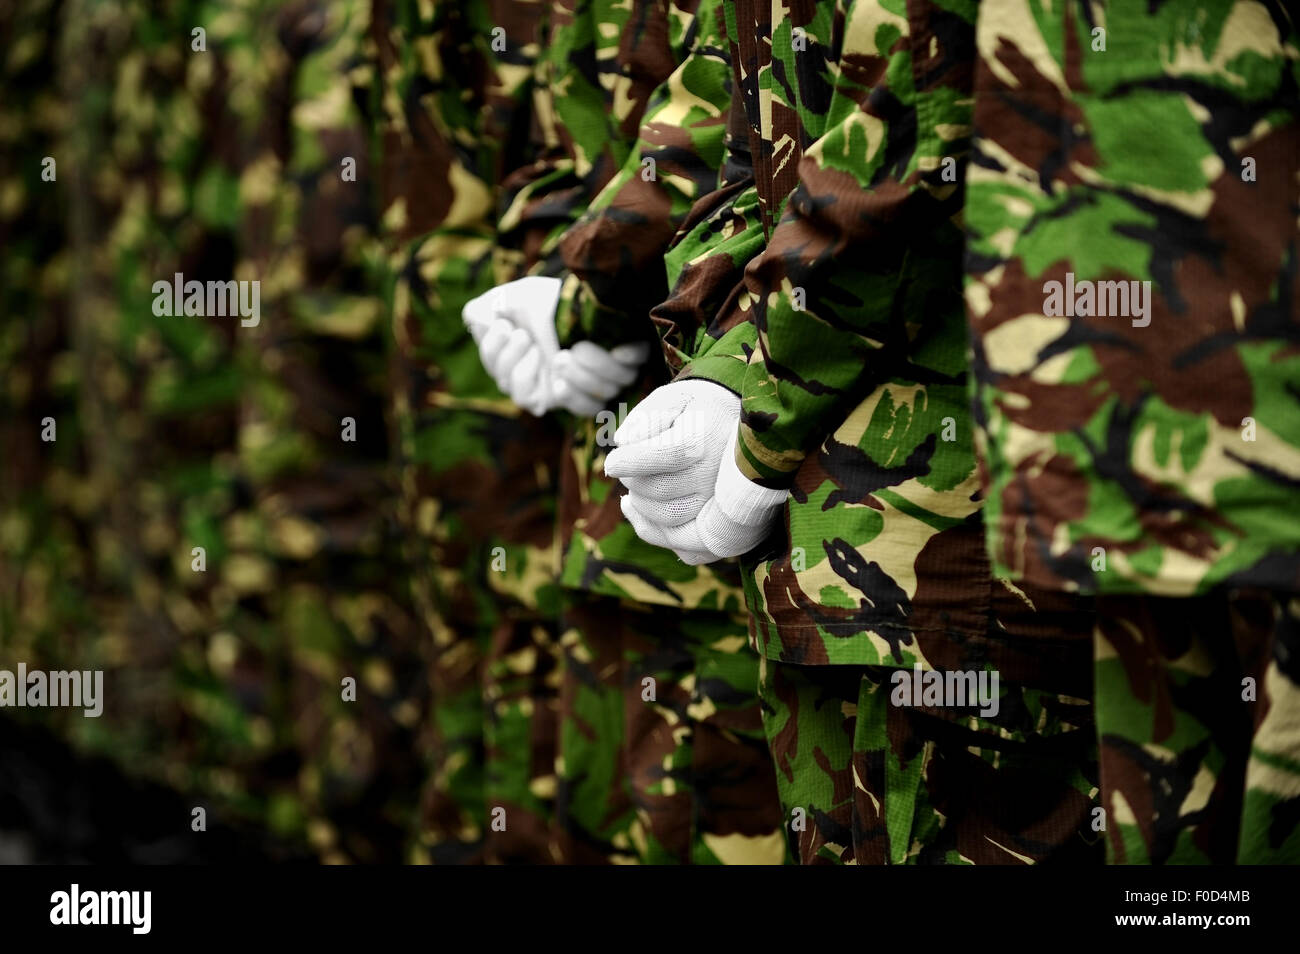 Two soldiers in camouflage uniform with hands behind their backs - Stock Image